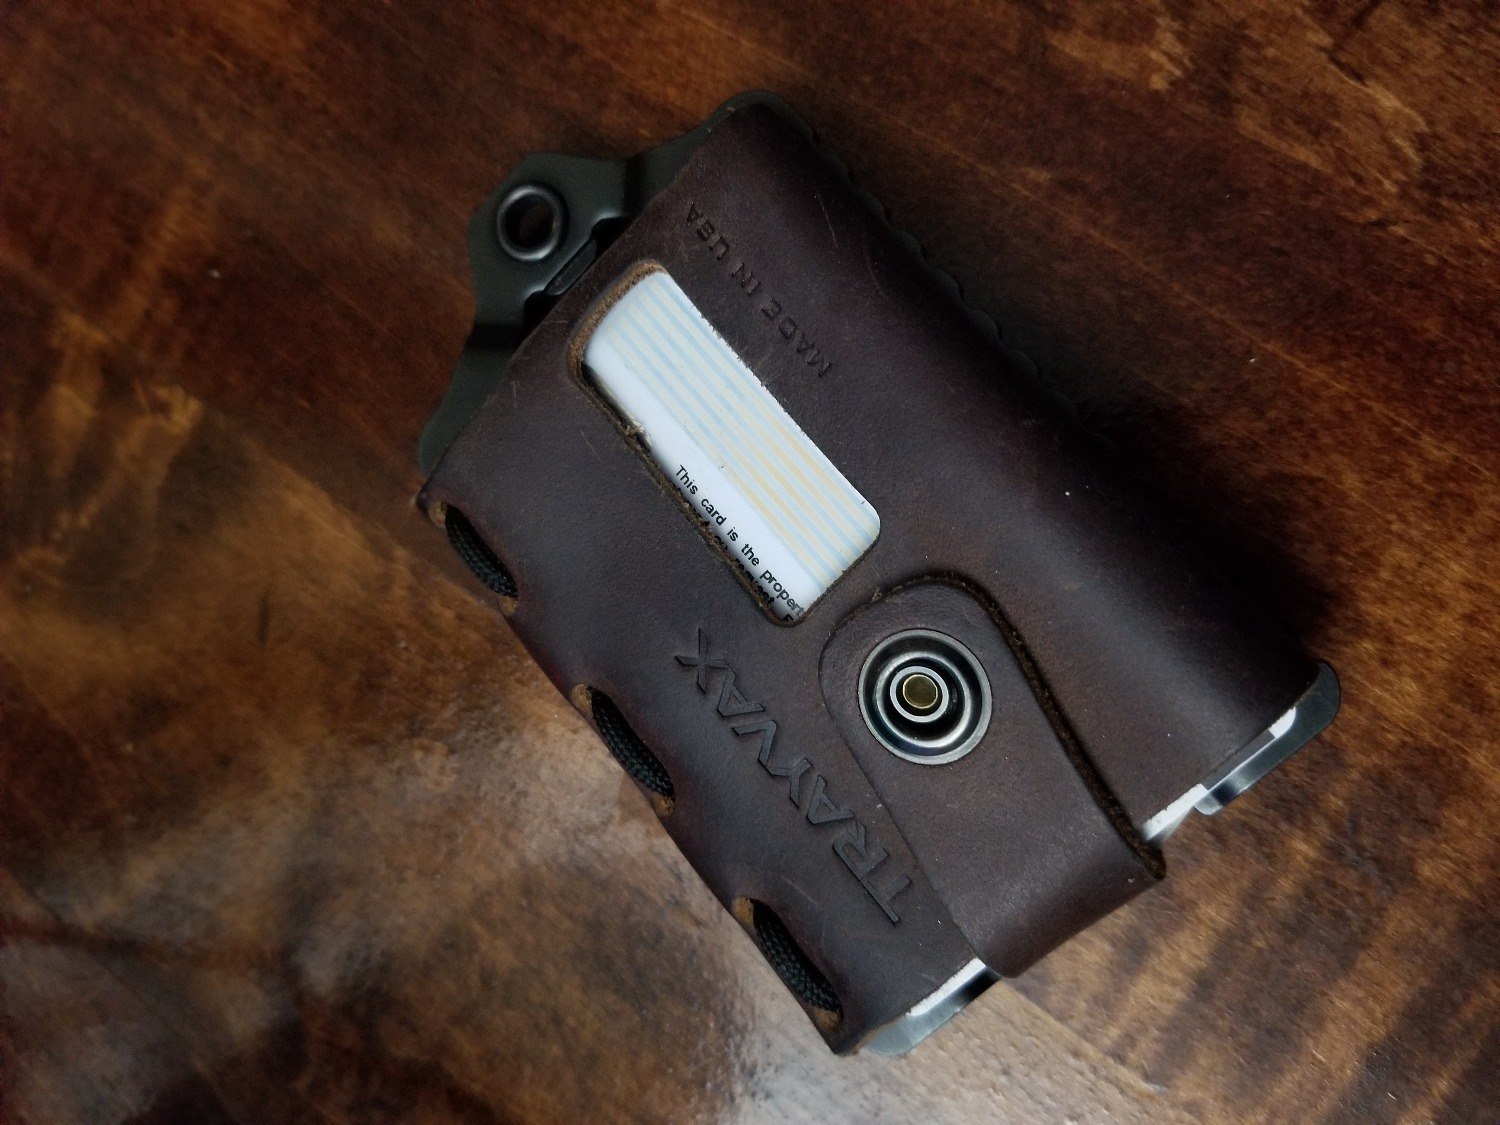 7962c675d9a Best wallet I ve ever bought. My friends also tried it. No complaints at  all. This wallet is sturdy and slim about the size of a credit card. I  recommend.